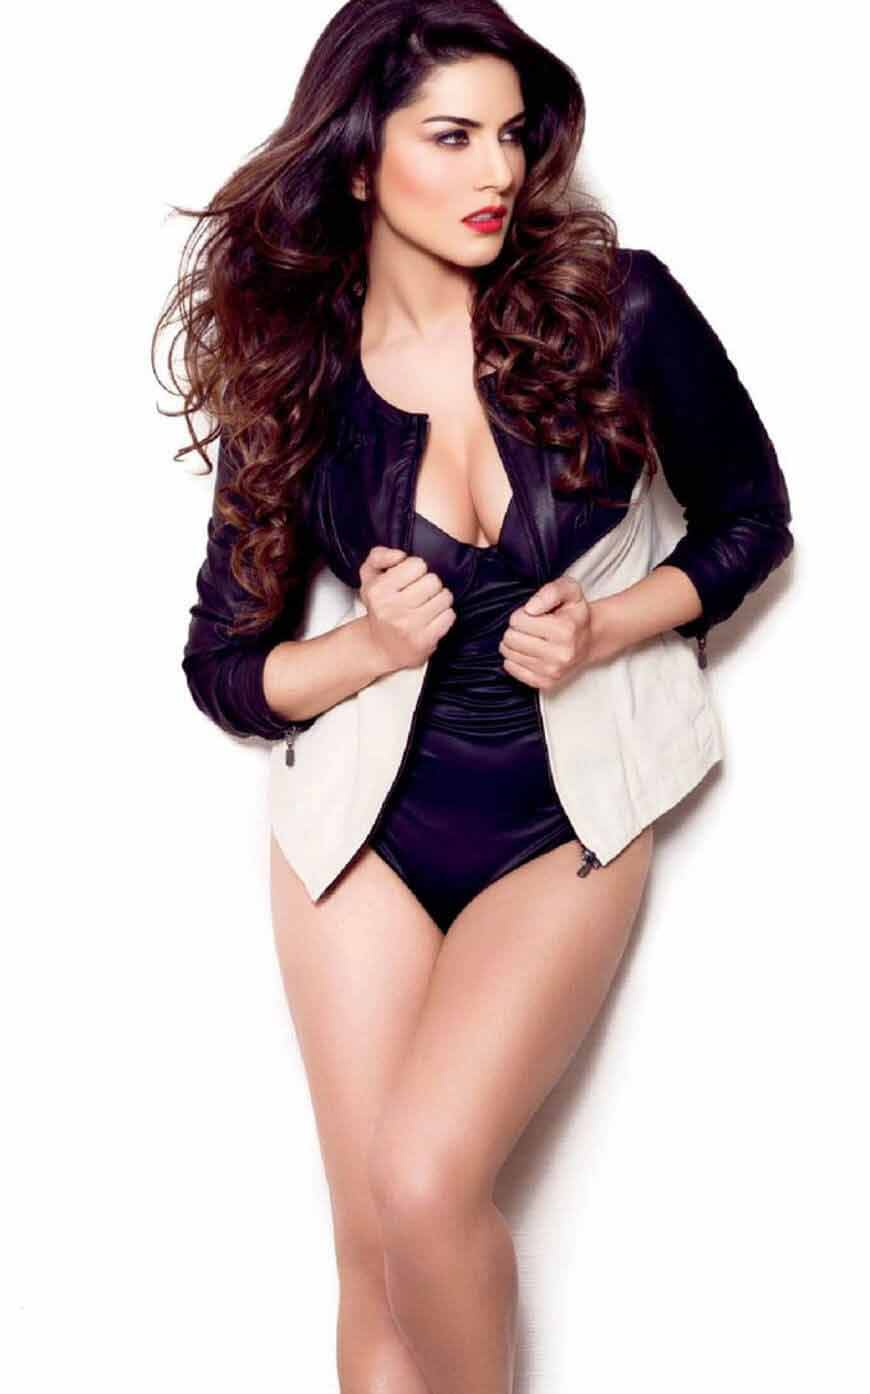 Gorgeous Photoshoot pic of sunny leone that can enhance your lust